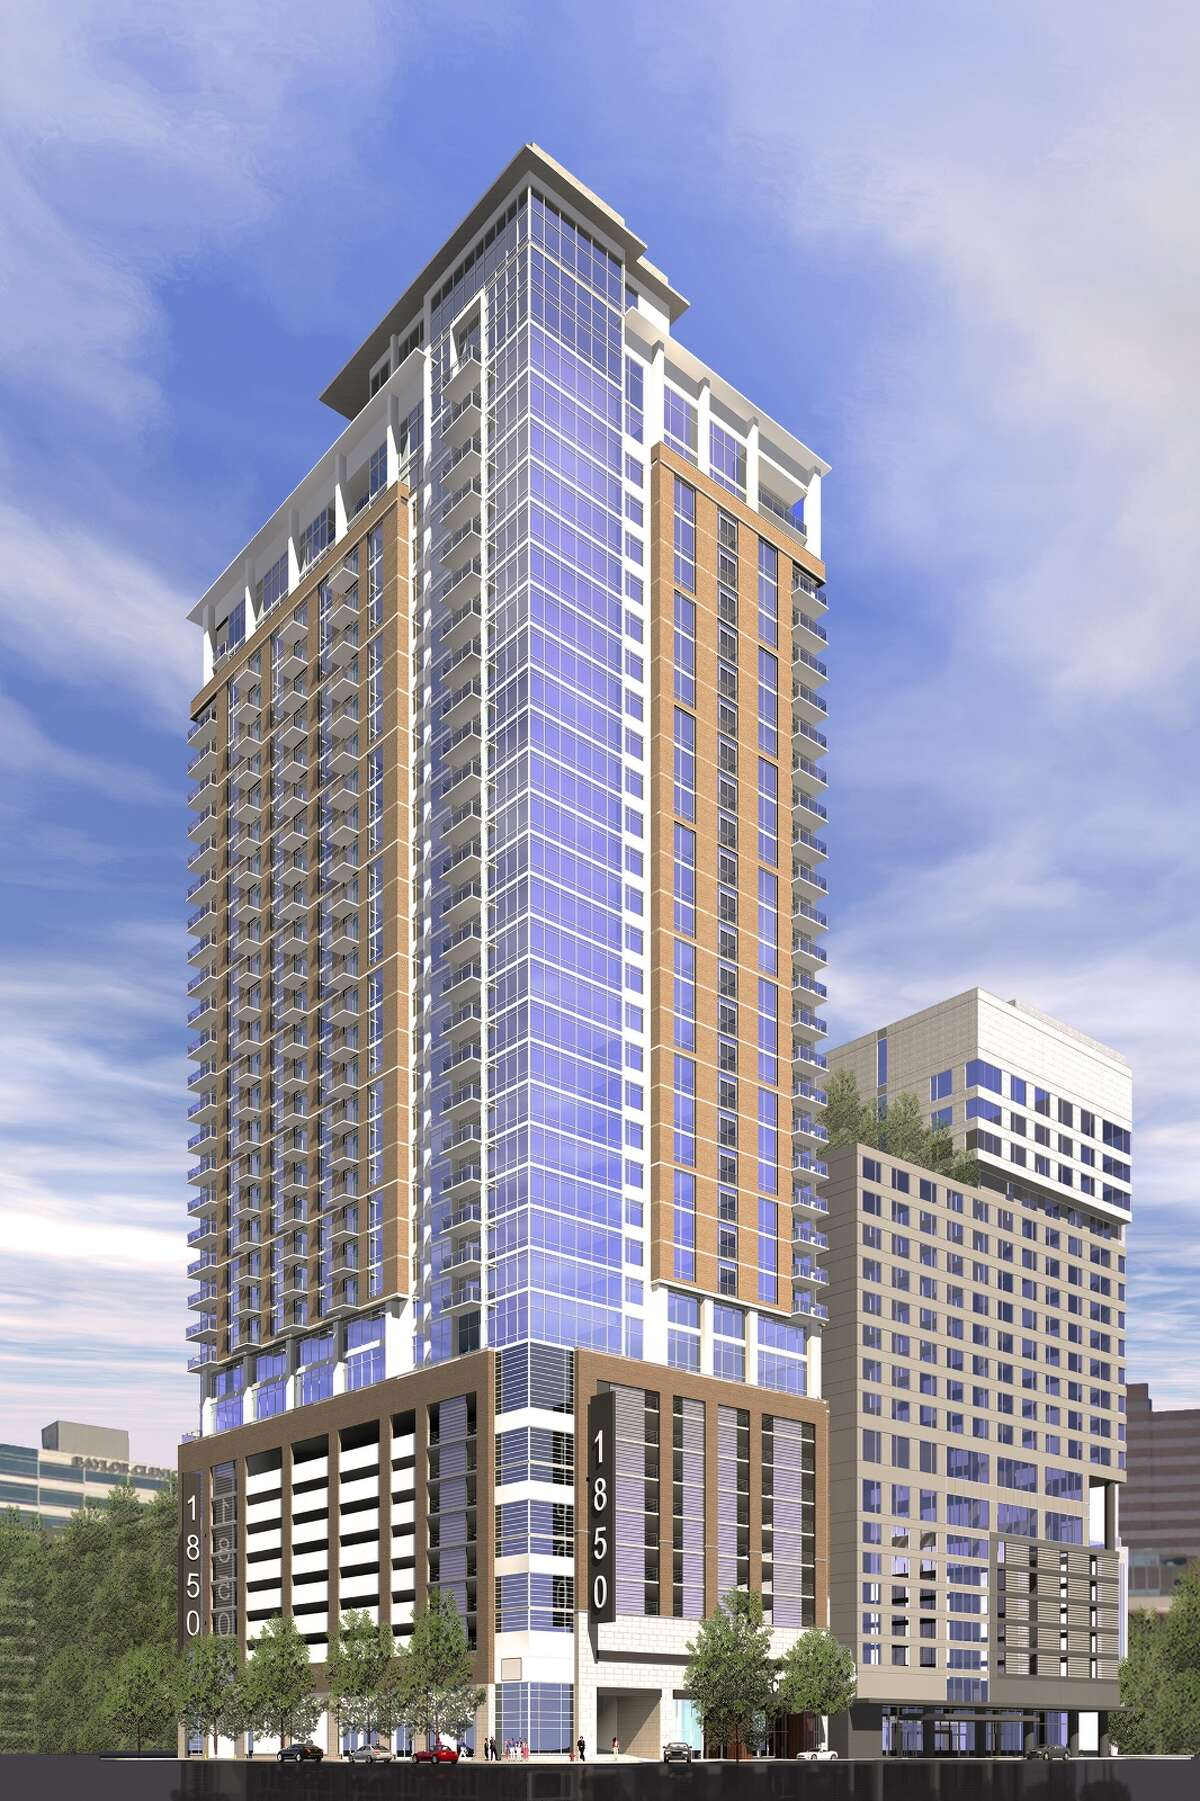 A rendering shows the Ascent Med Center apartment project next to a 357-room hotel. Ascent will offer units from 339 square feet, with students in mind, to large three-bedrooms aimed at higher-income renters.